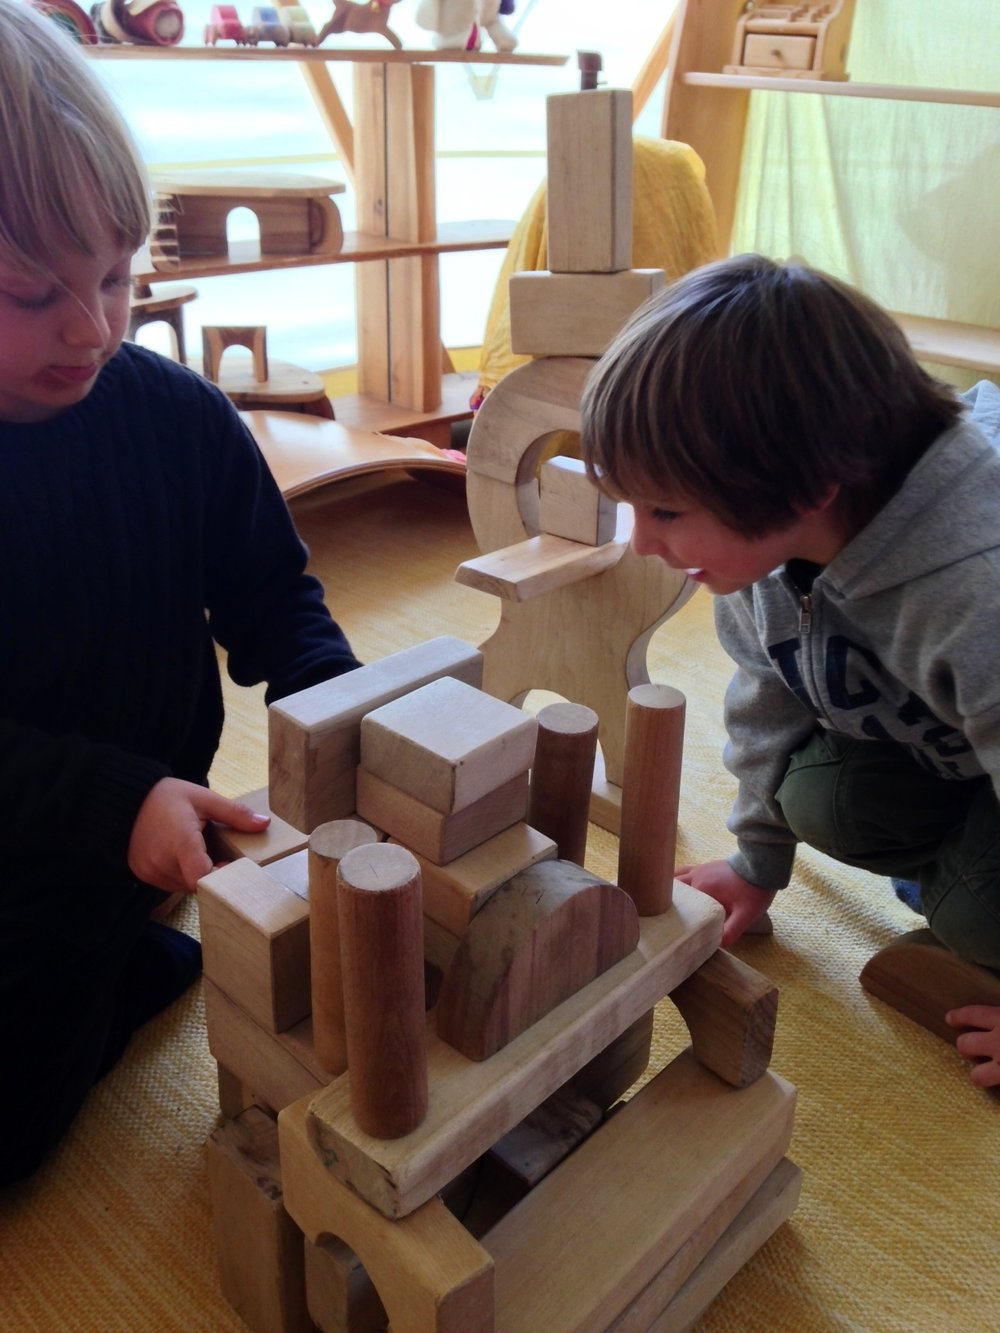 Limitless possibilities for play, and ample time for the sacred work of early childhood